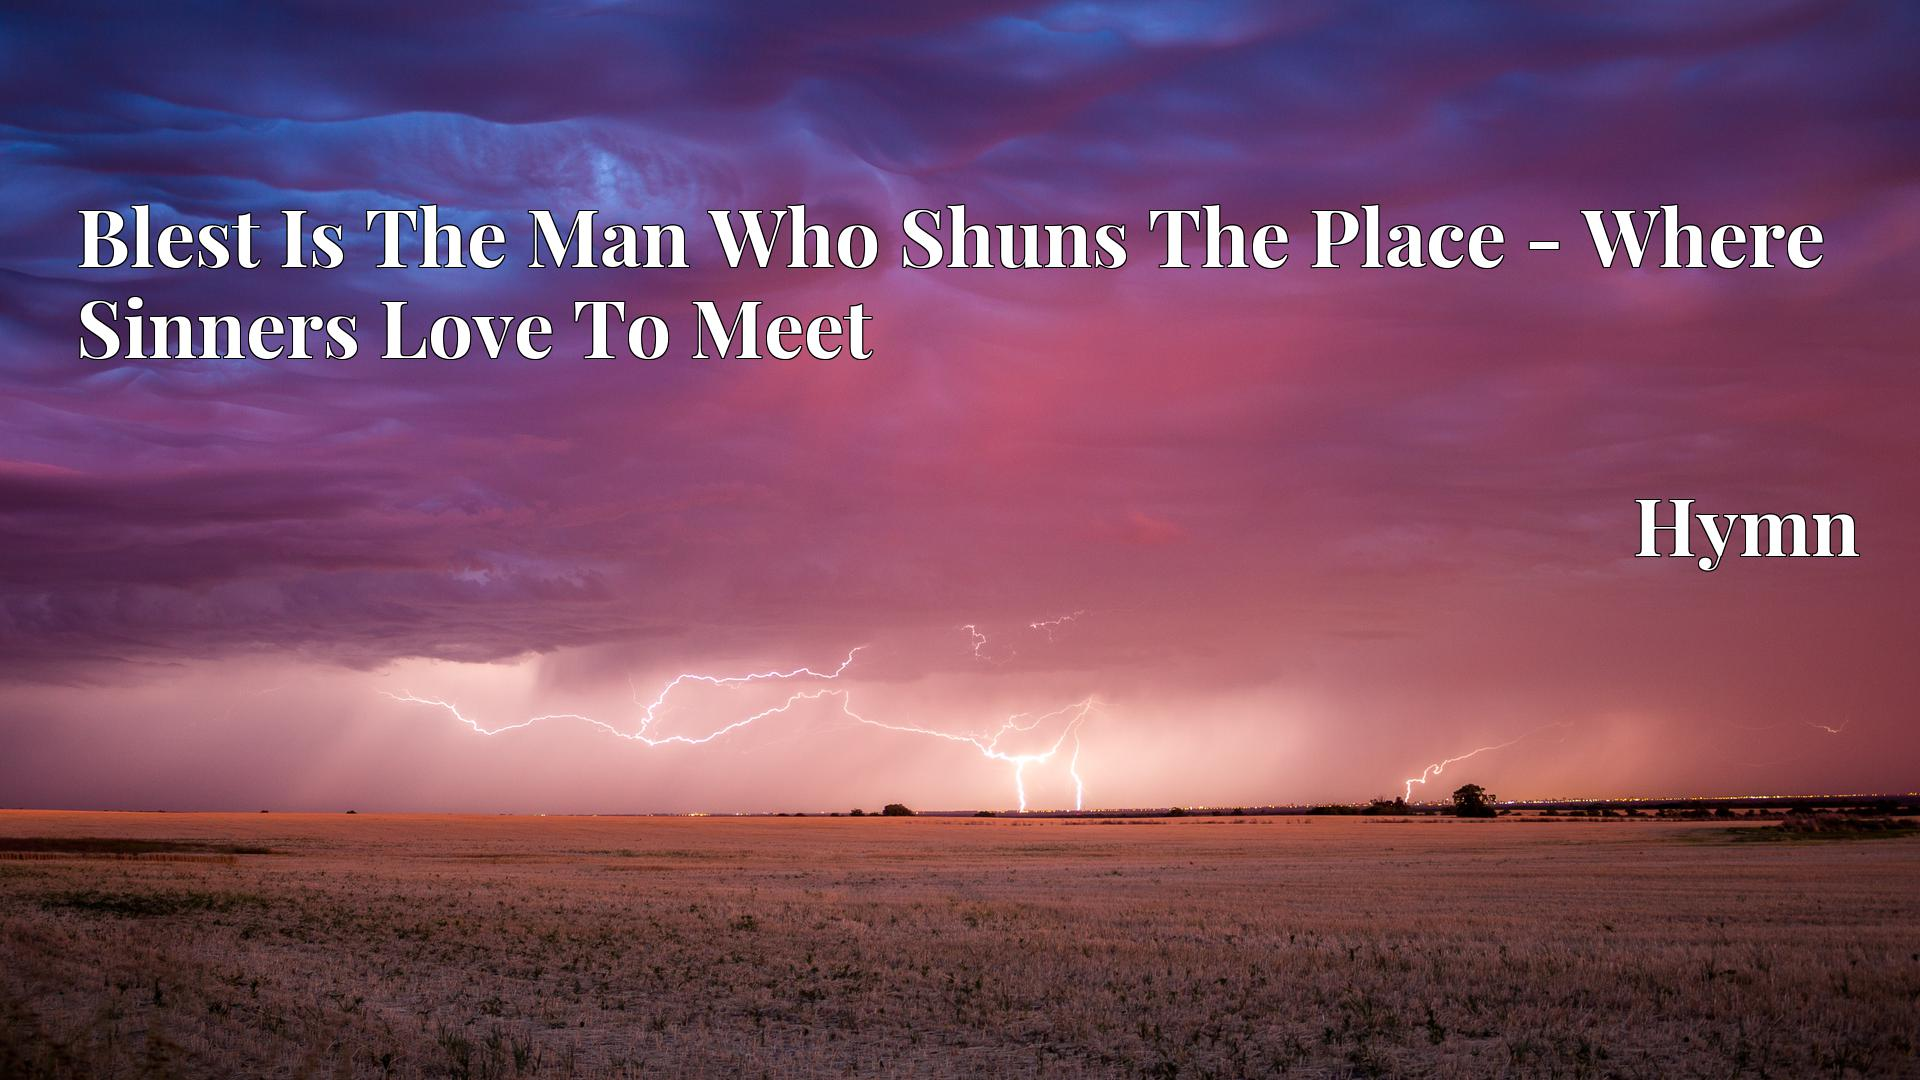 Blest Is The Man Who Shuns The Place - Where Sinners Love To Meet Hymn